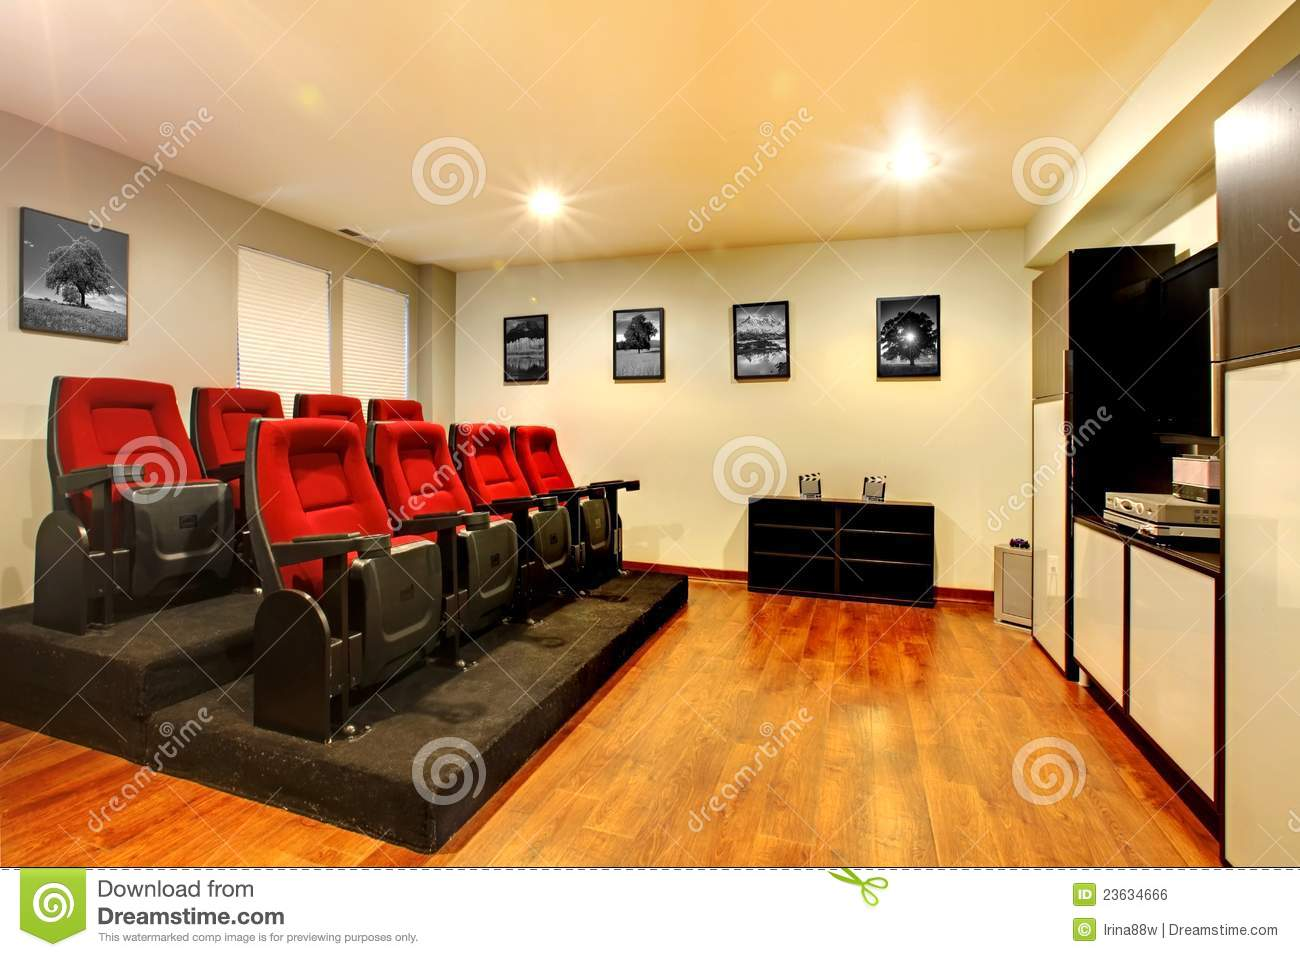 Home tv movie theater entertainment room interior royalty for Entertainment rooms interior designs